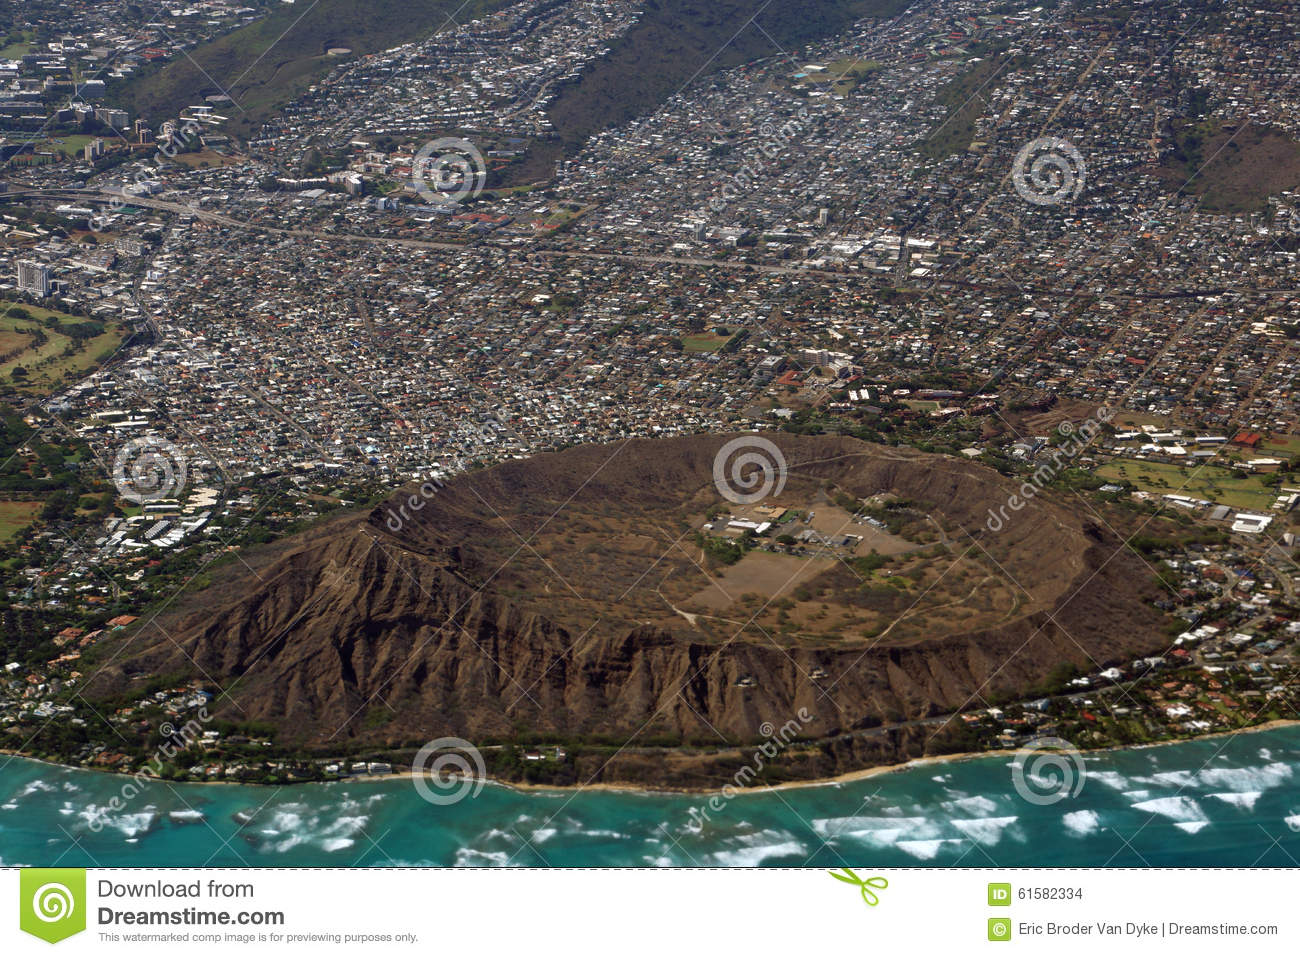 Diamondhead (MS) United States  city images : Luchtmening Van Diamondhead, Kapahulu, Kahala, Vreedzame Oceaan Stock ...